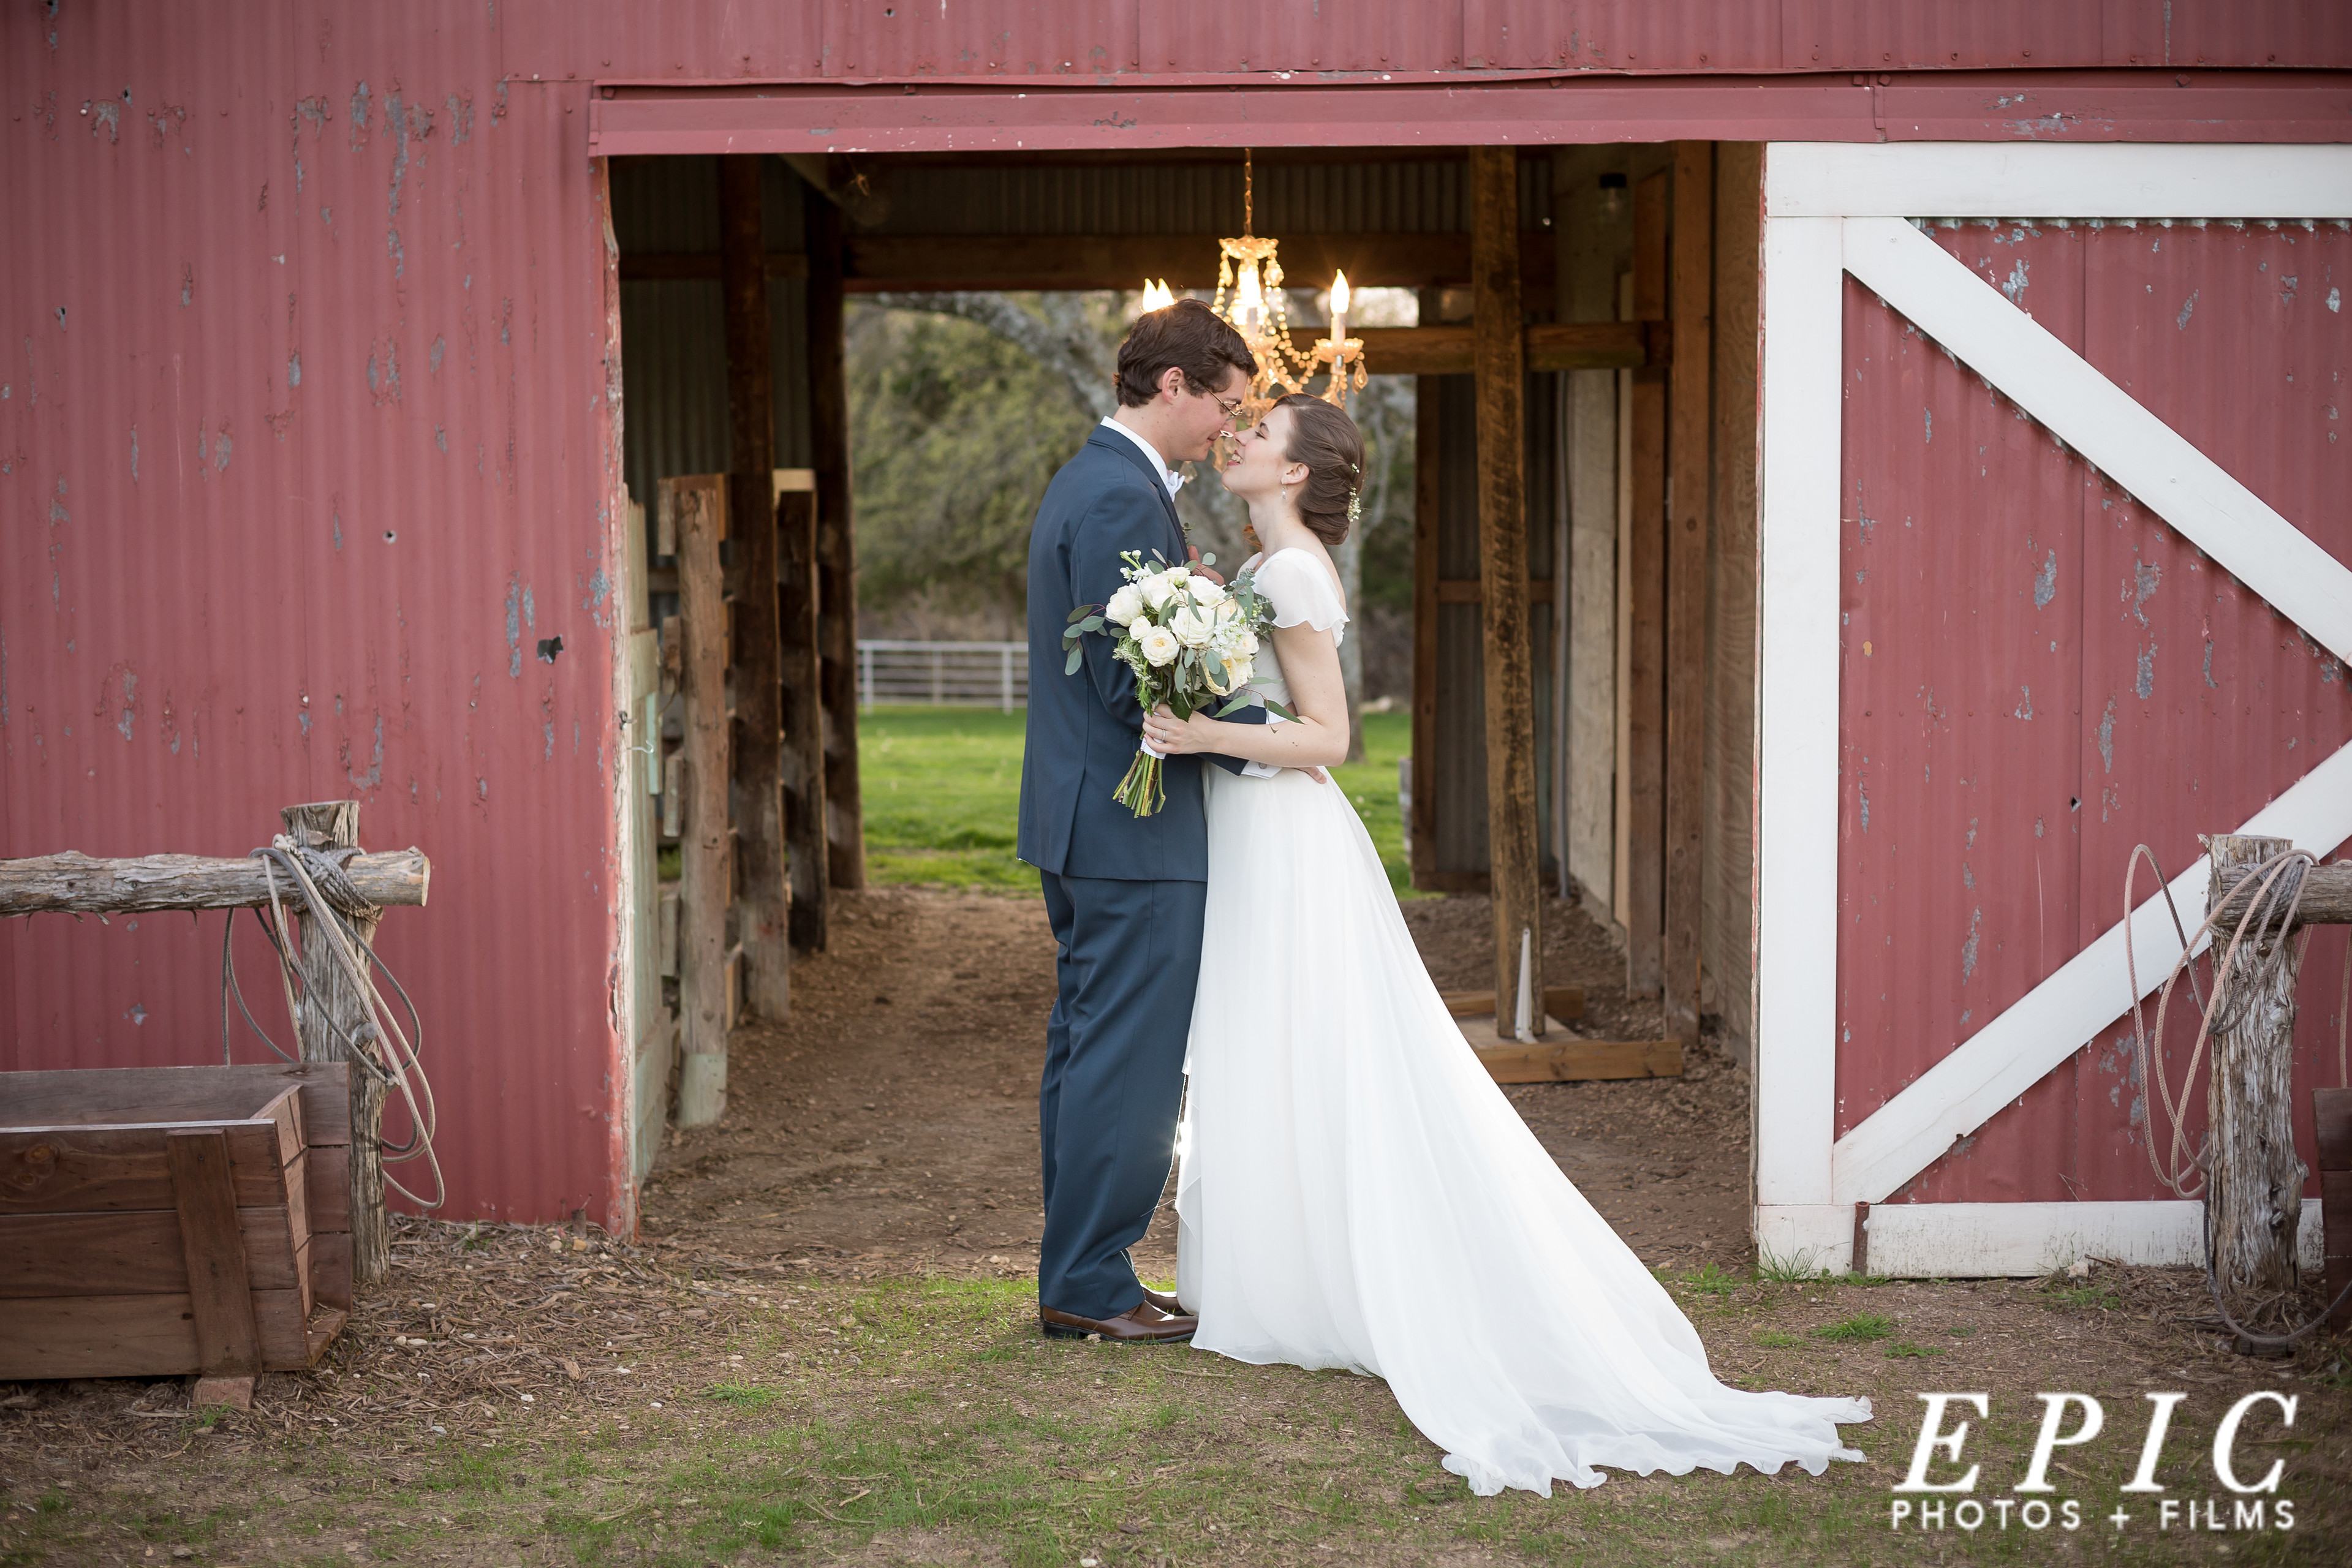 newlyweds touching noses in front of a red barn